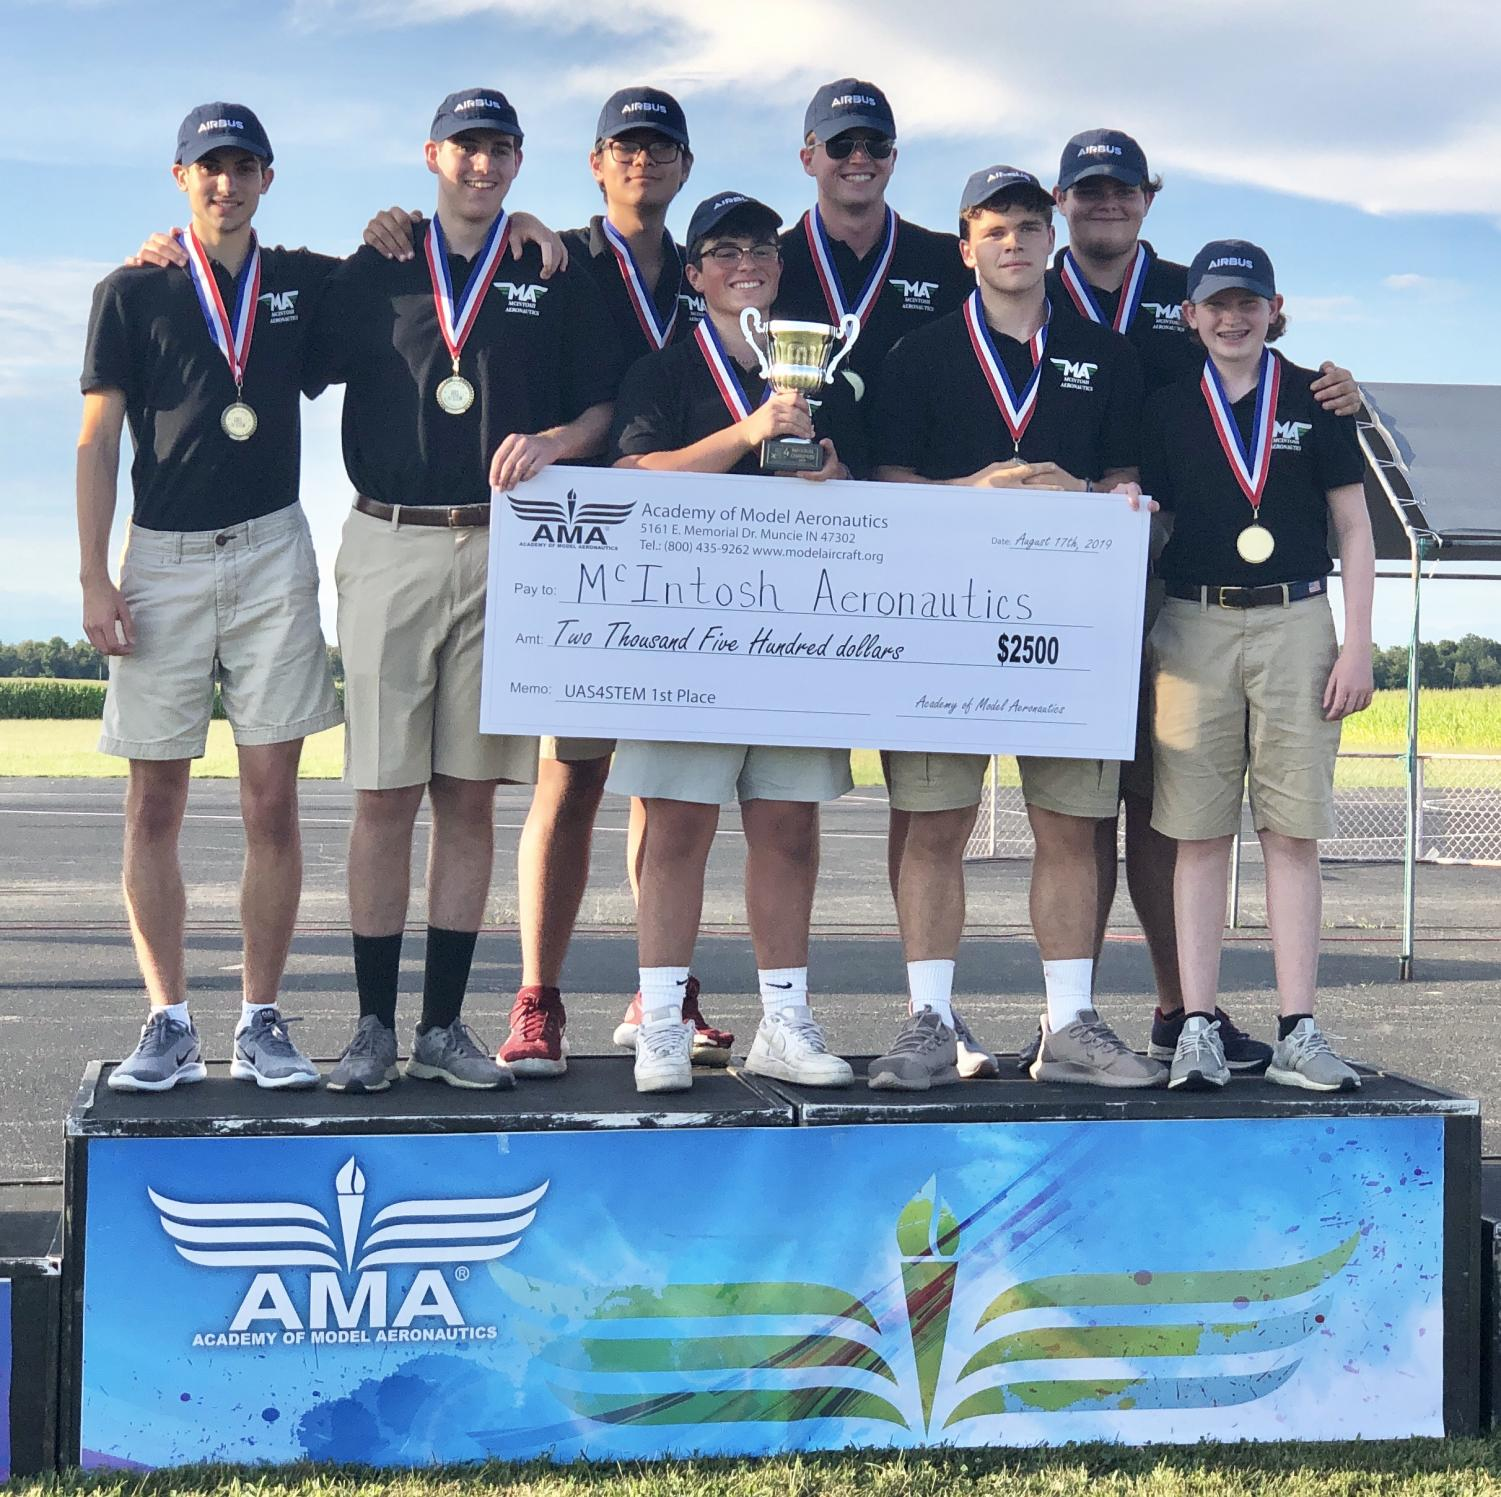 The McIntosh Aeronautics team poses atop the championship podium after receiving their trophy and prize check.